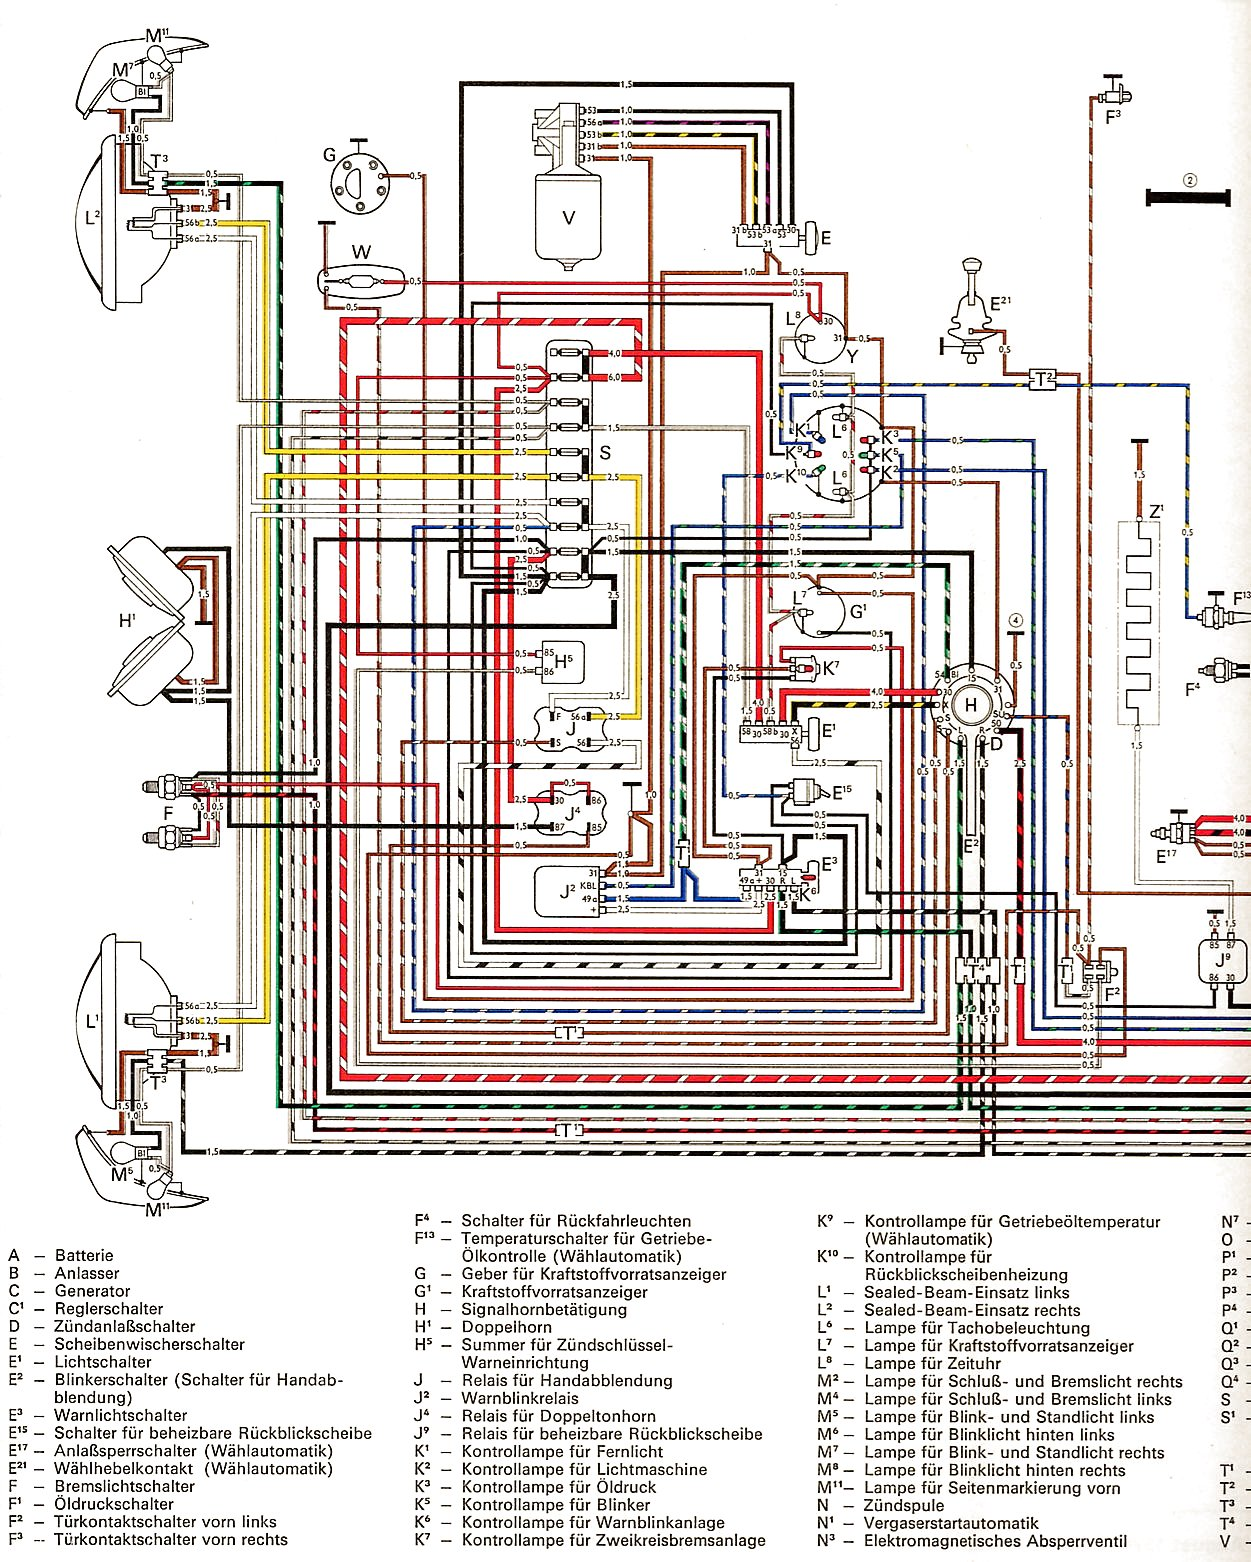 vw beetle headlight switch wiring diagram wiring diagrams 1969 1300 beetle wiring diagram vw forum vzi europe 39 s largest